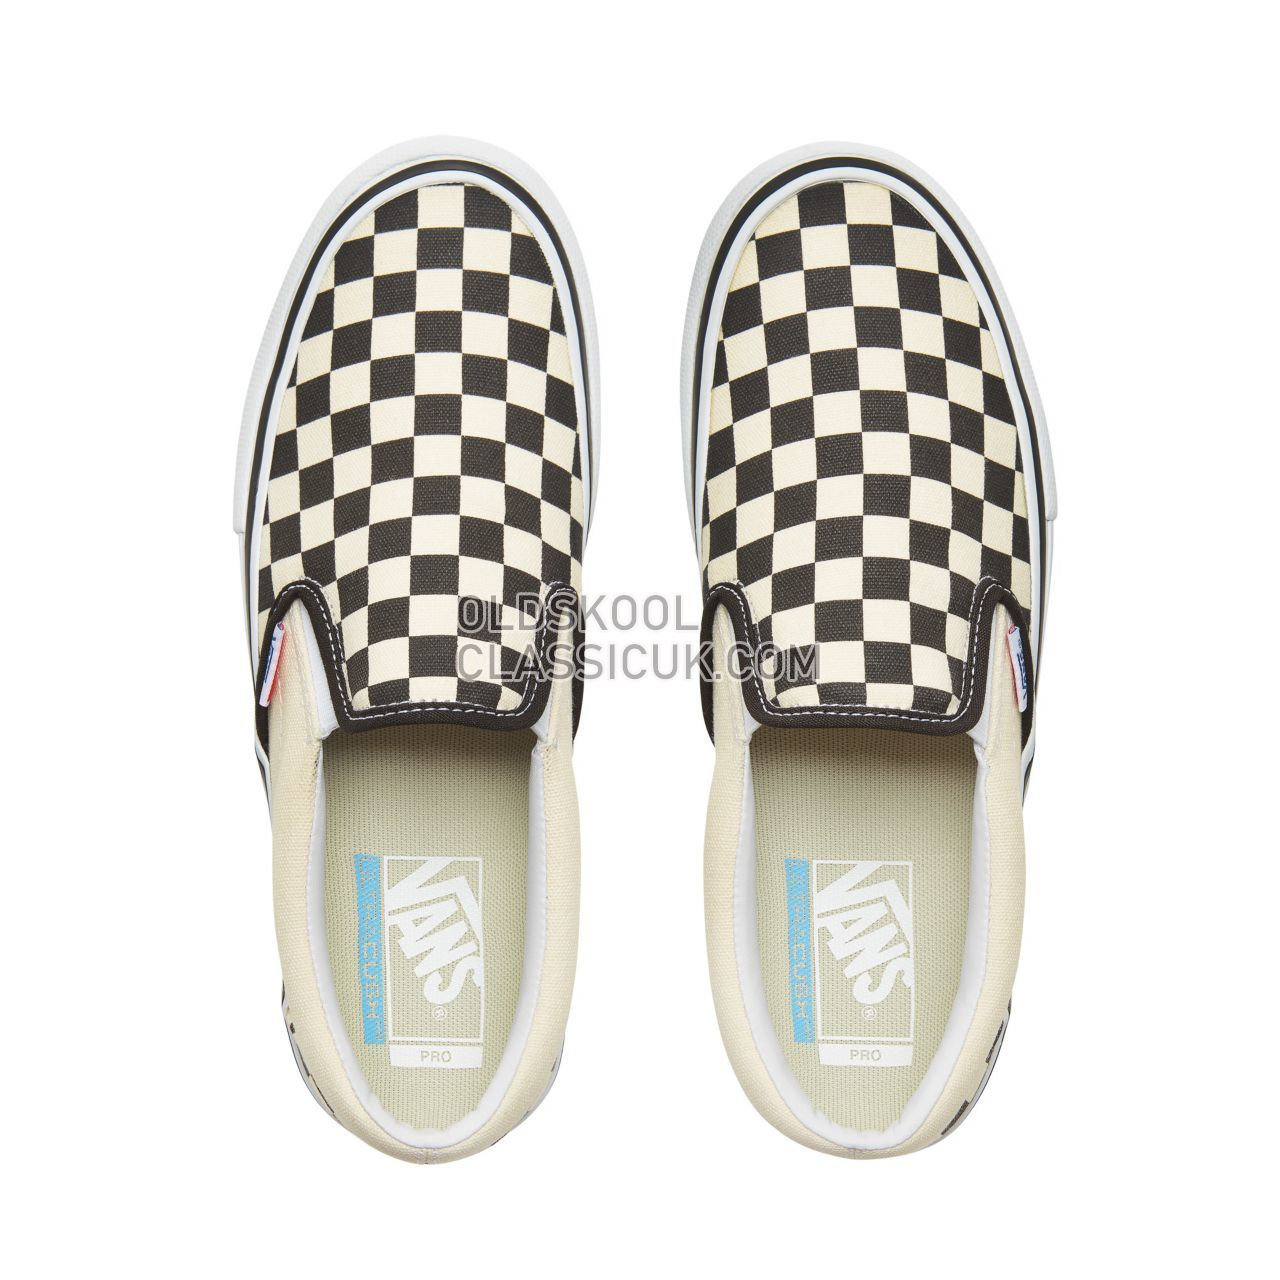 Vans Checkerboard  Slip-On Pro Sneakers Mens Black-White VN0A347VAPK Shoes